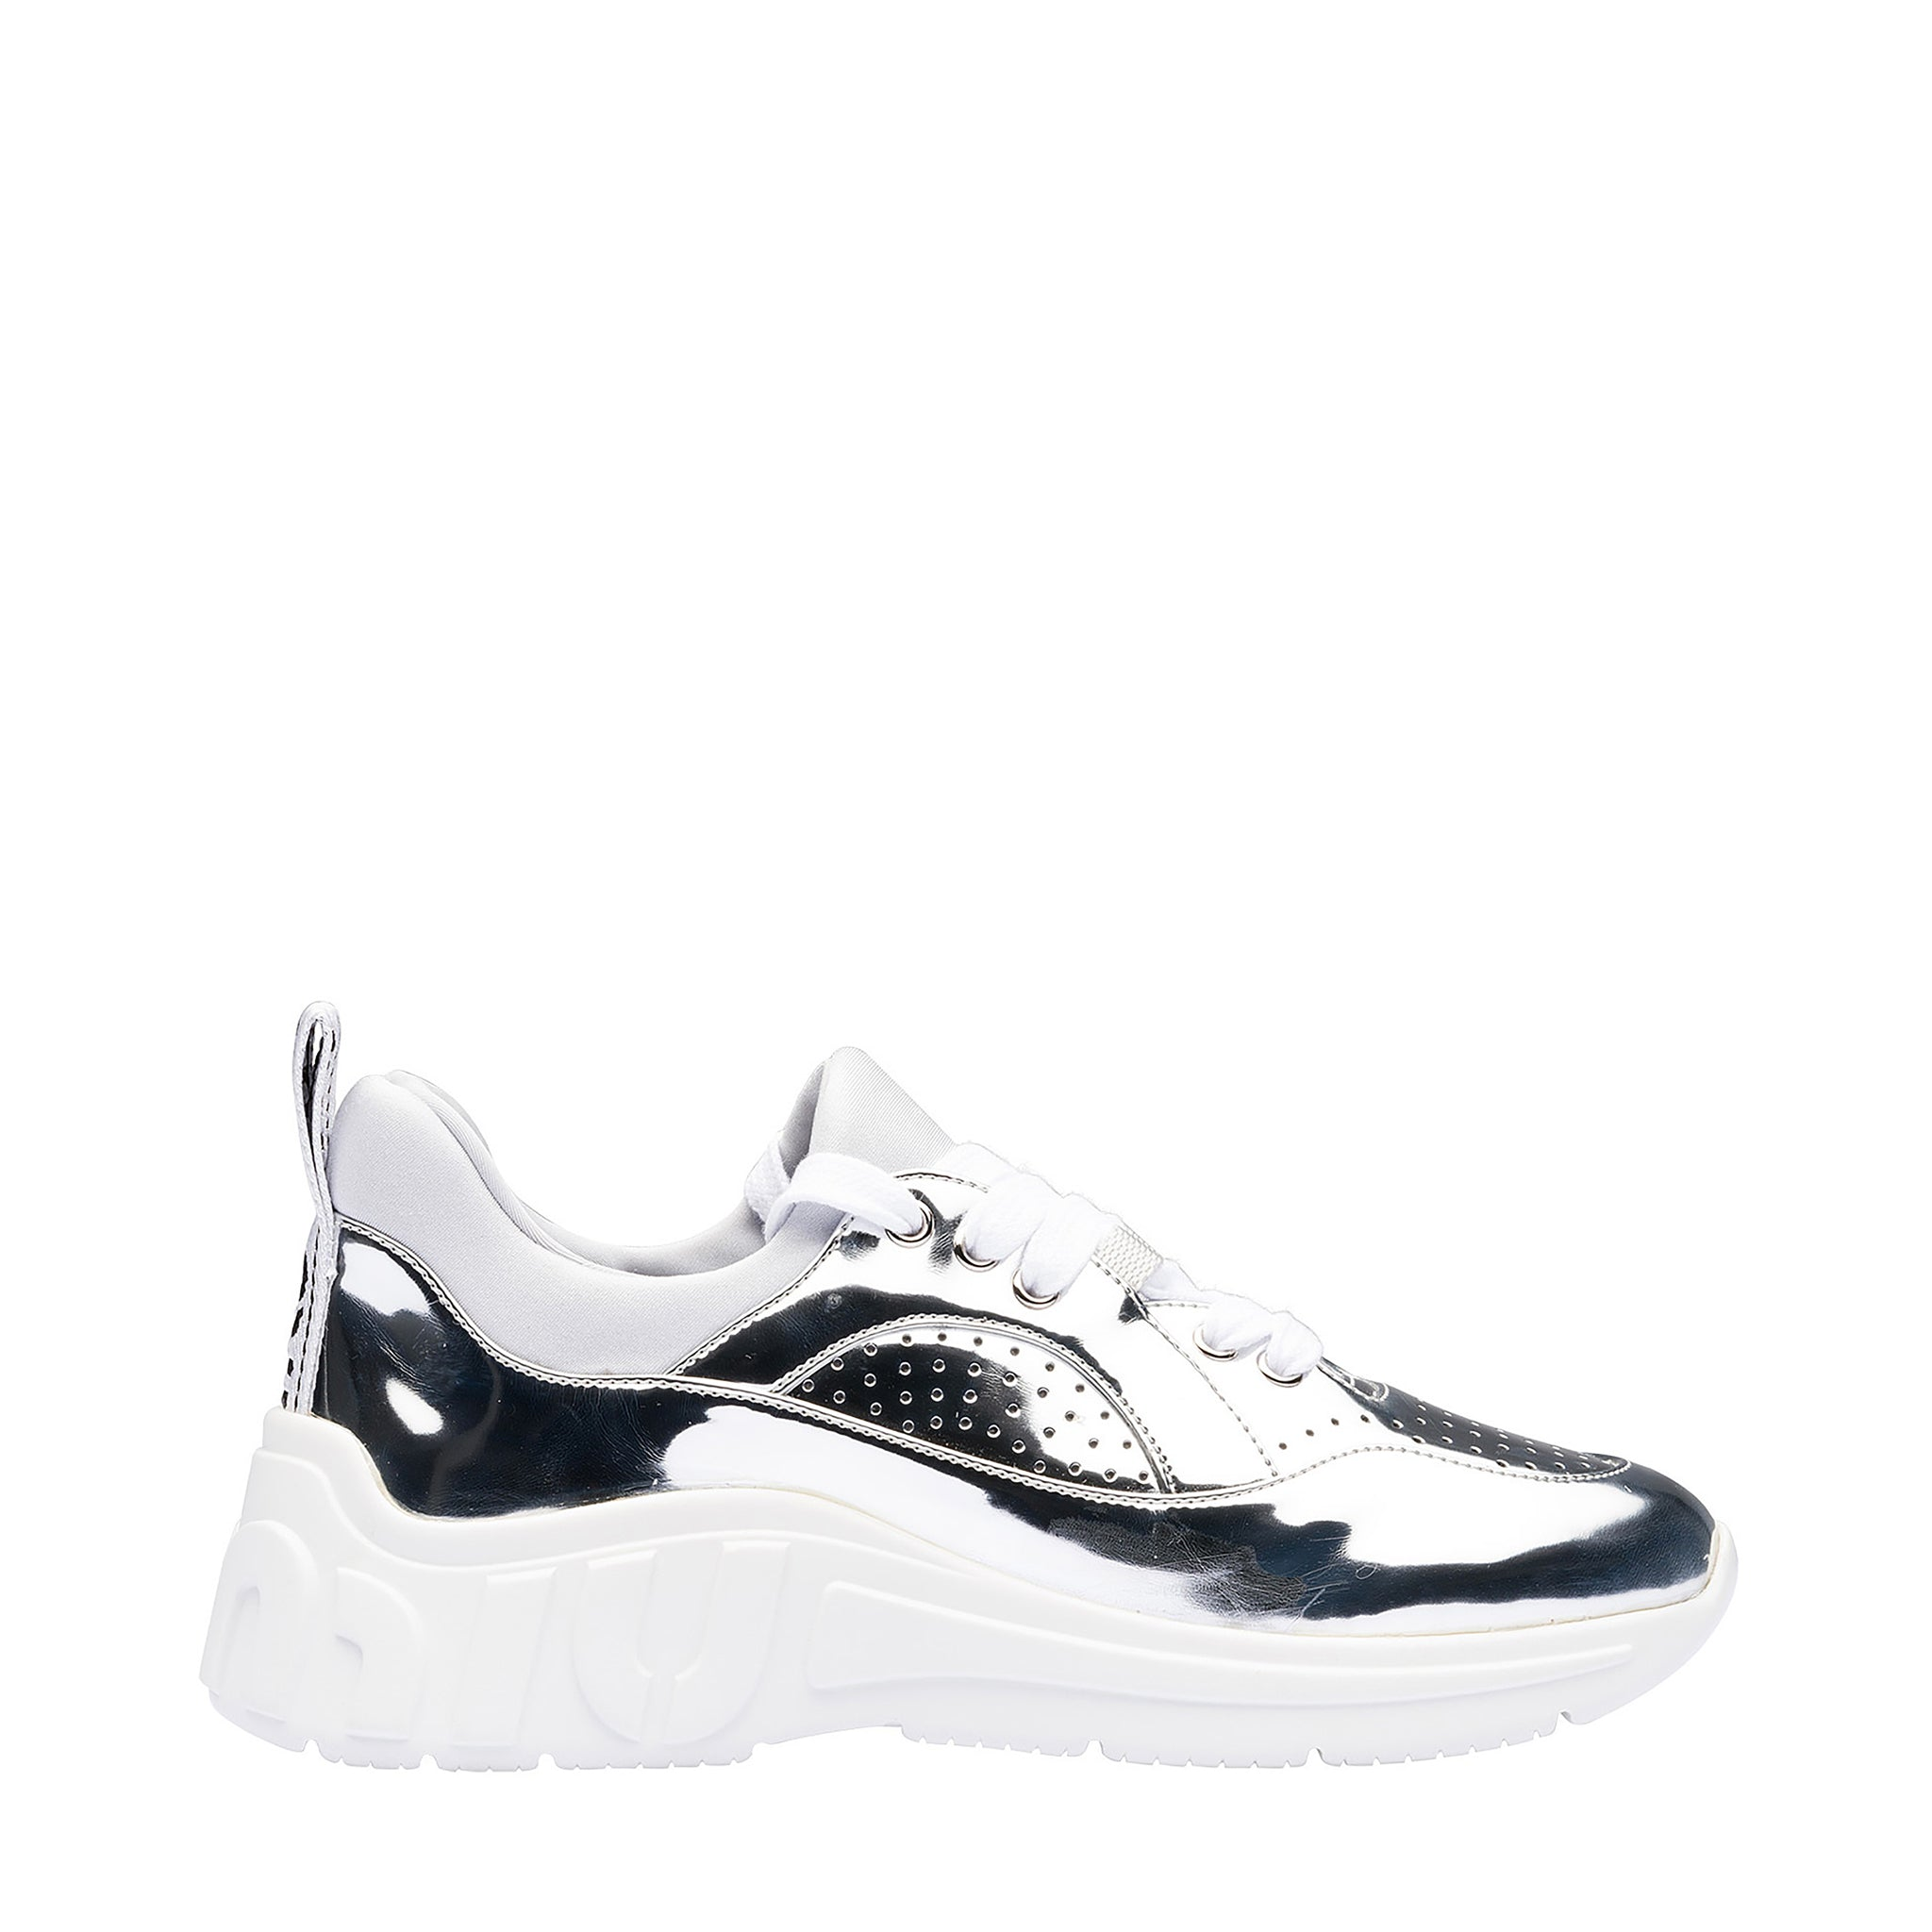 Miu Miu Metal Tech Leather Sneakers